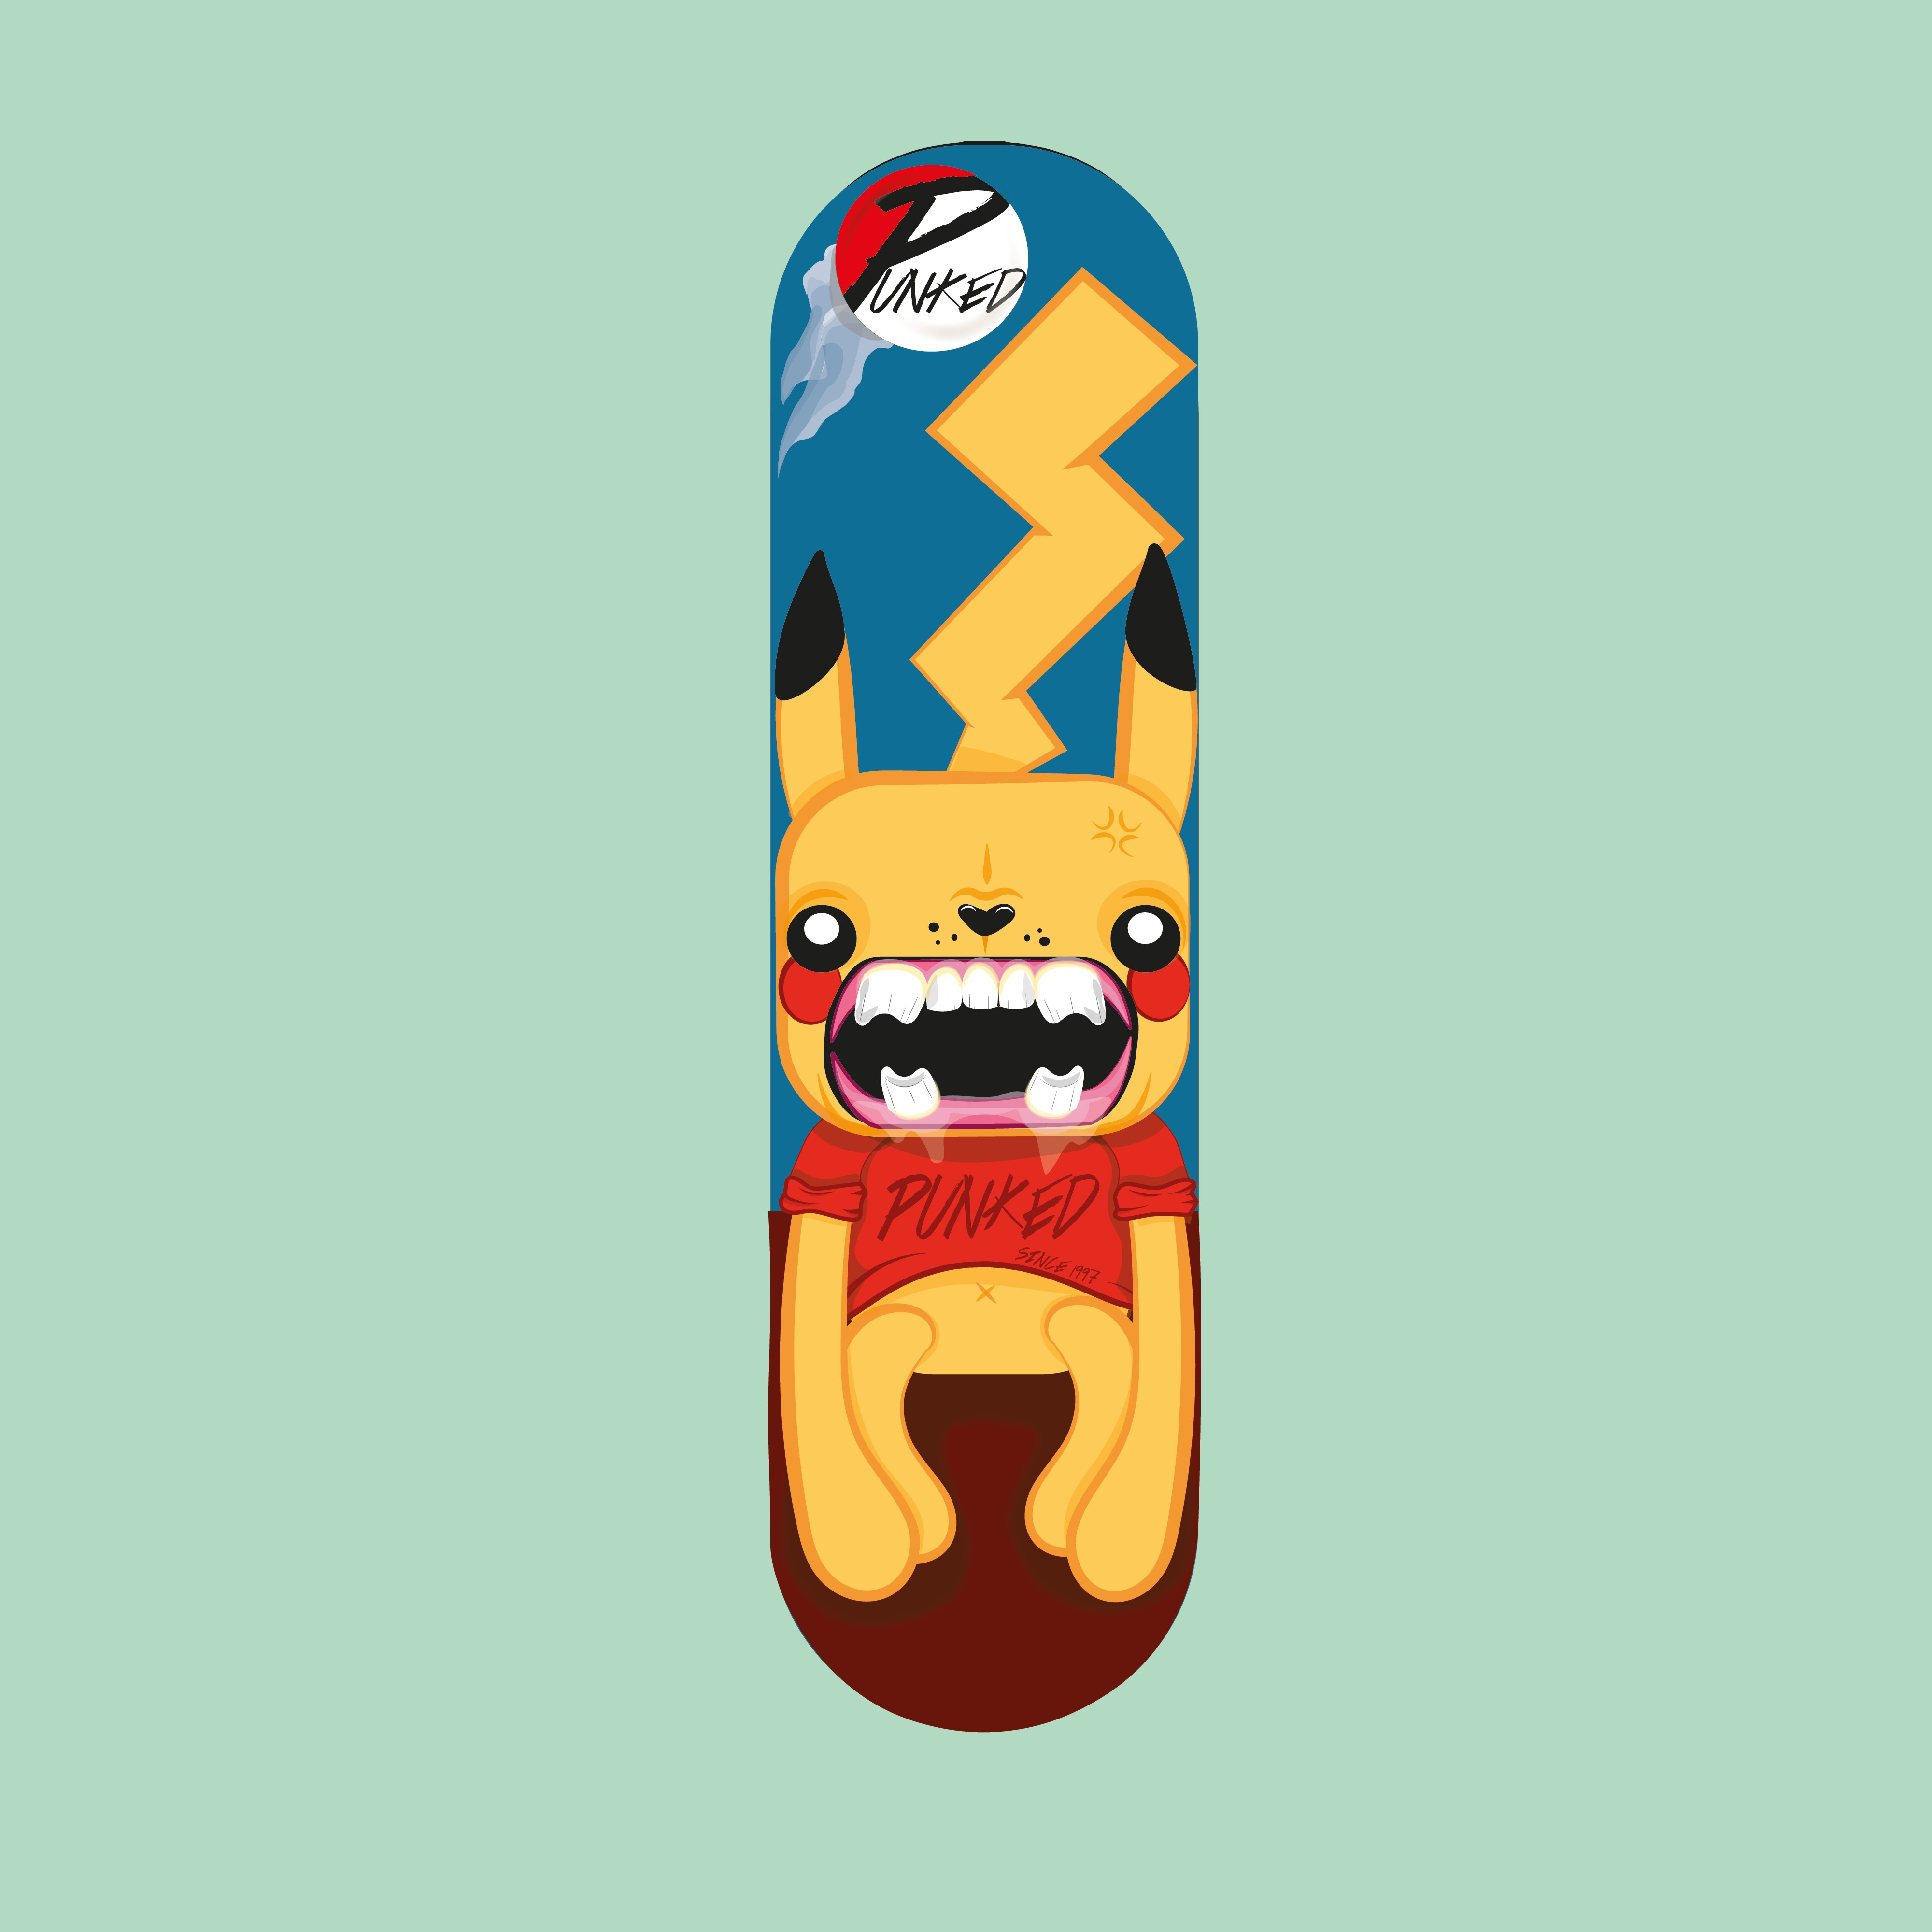 We Need A New Skateboard Graphic!